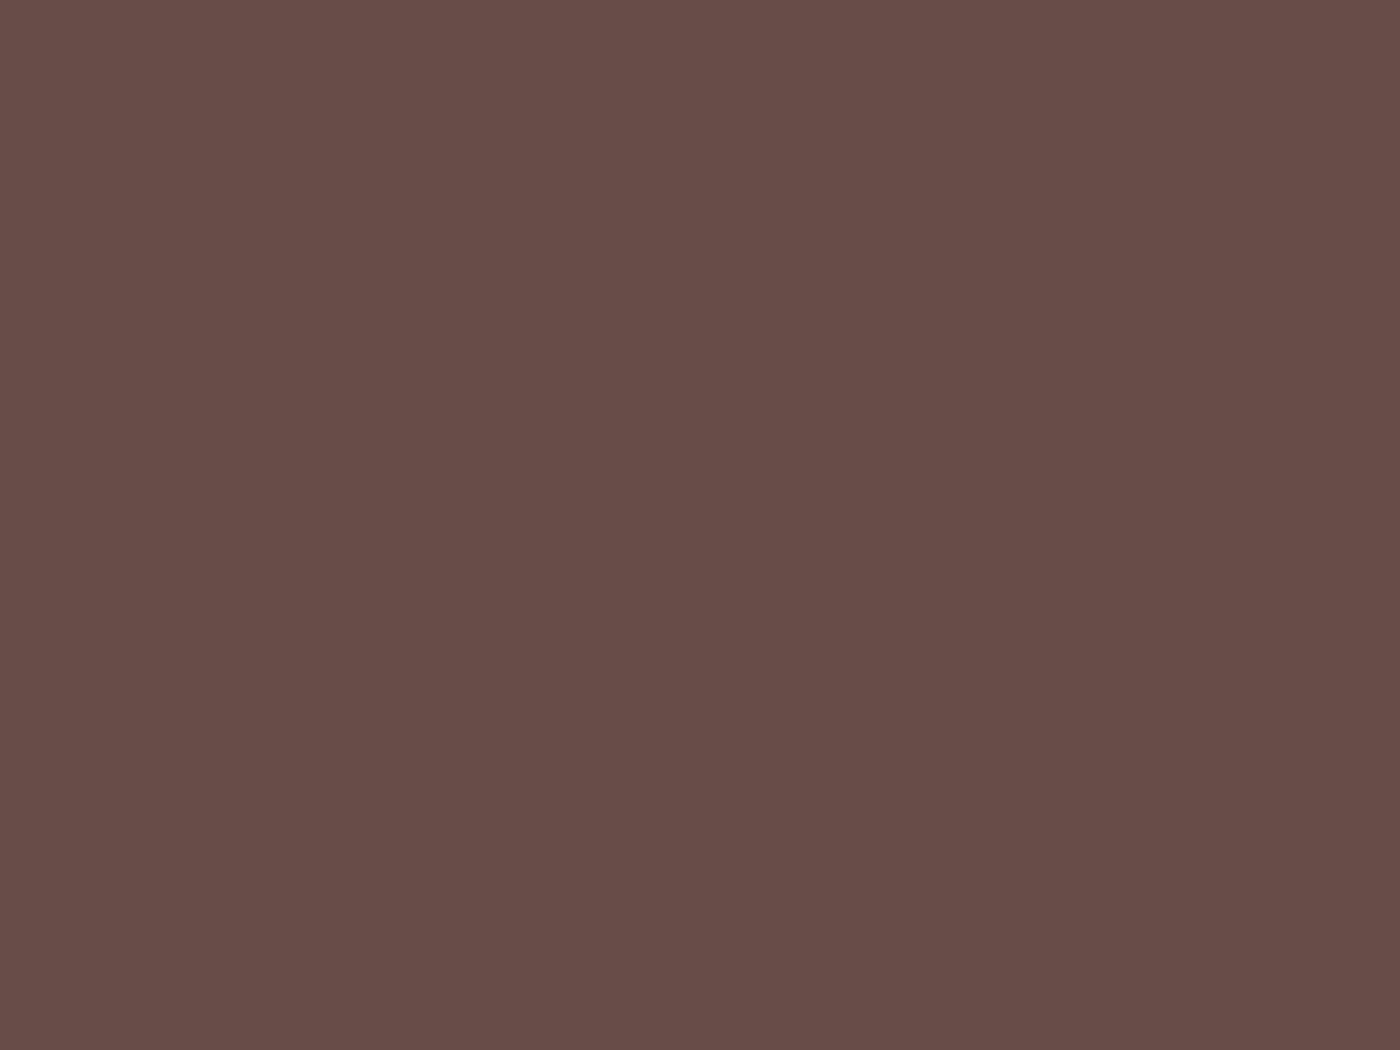 1400x1050 Medium Taupe Solid Color Background